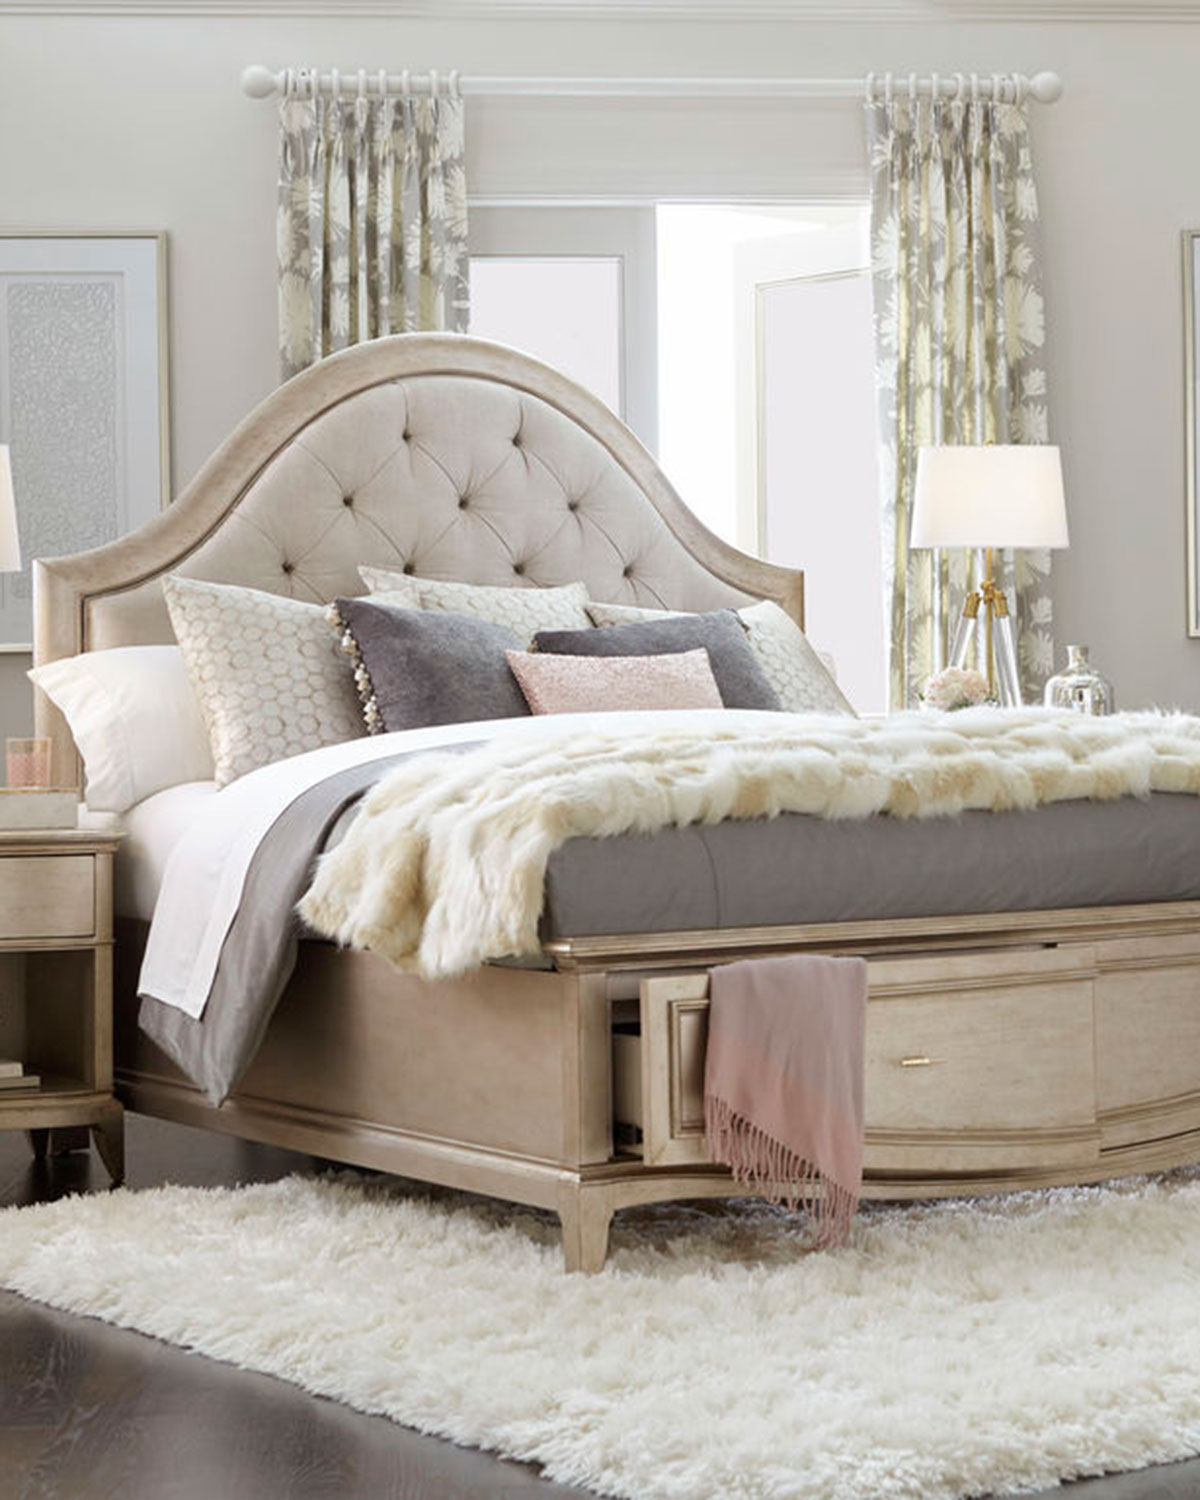 Superb Montane Tufted Queen Bed With Drawers